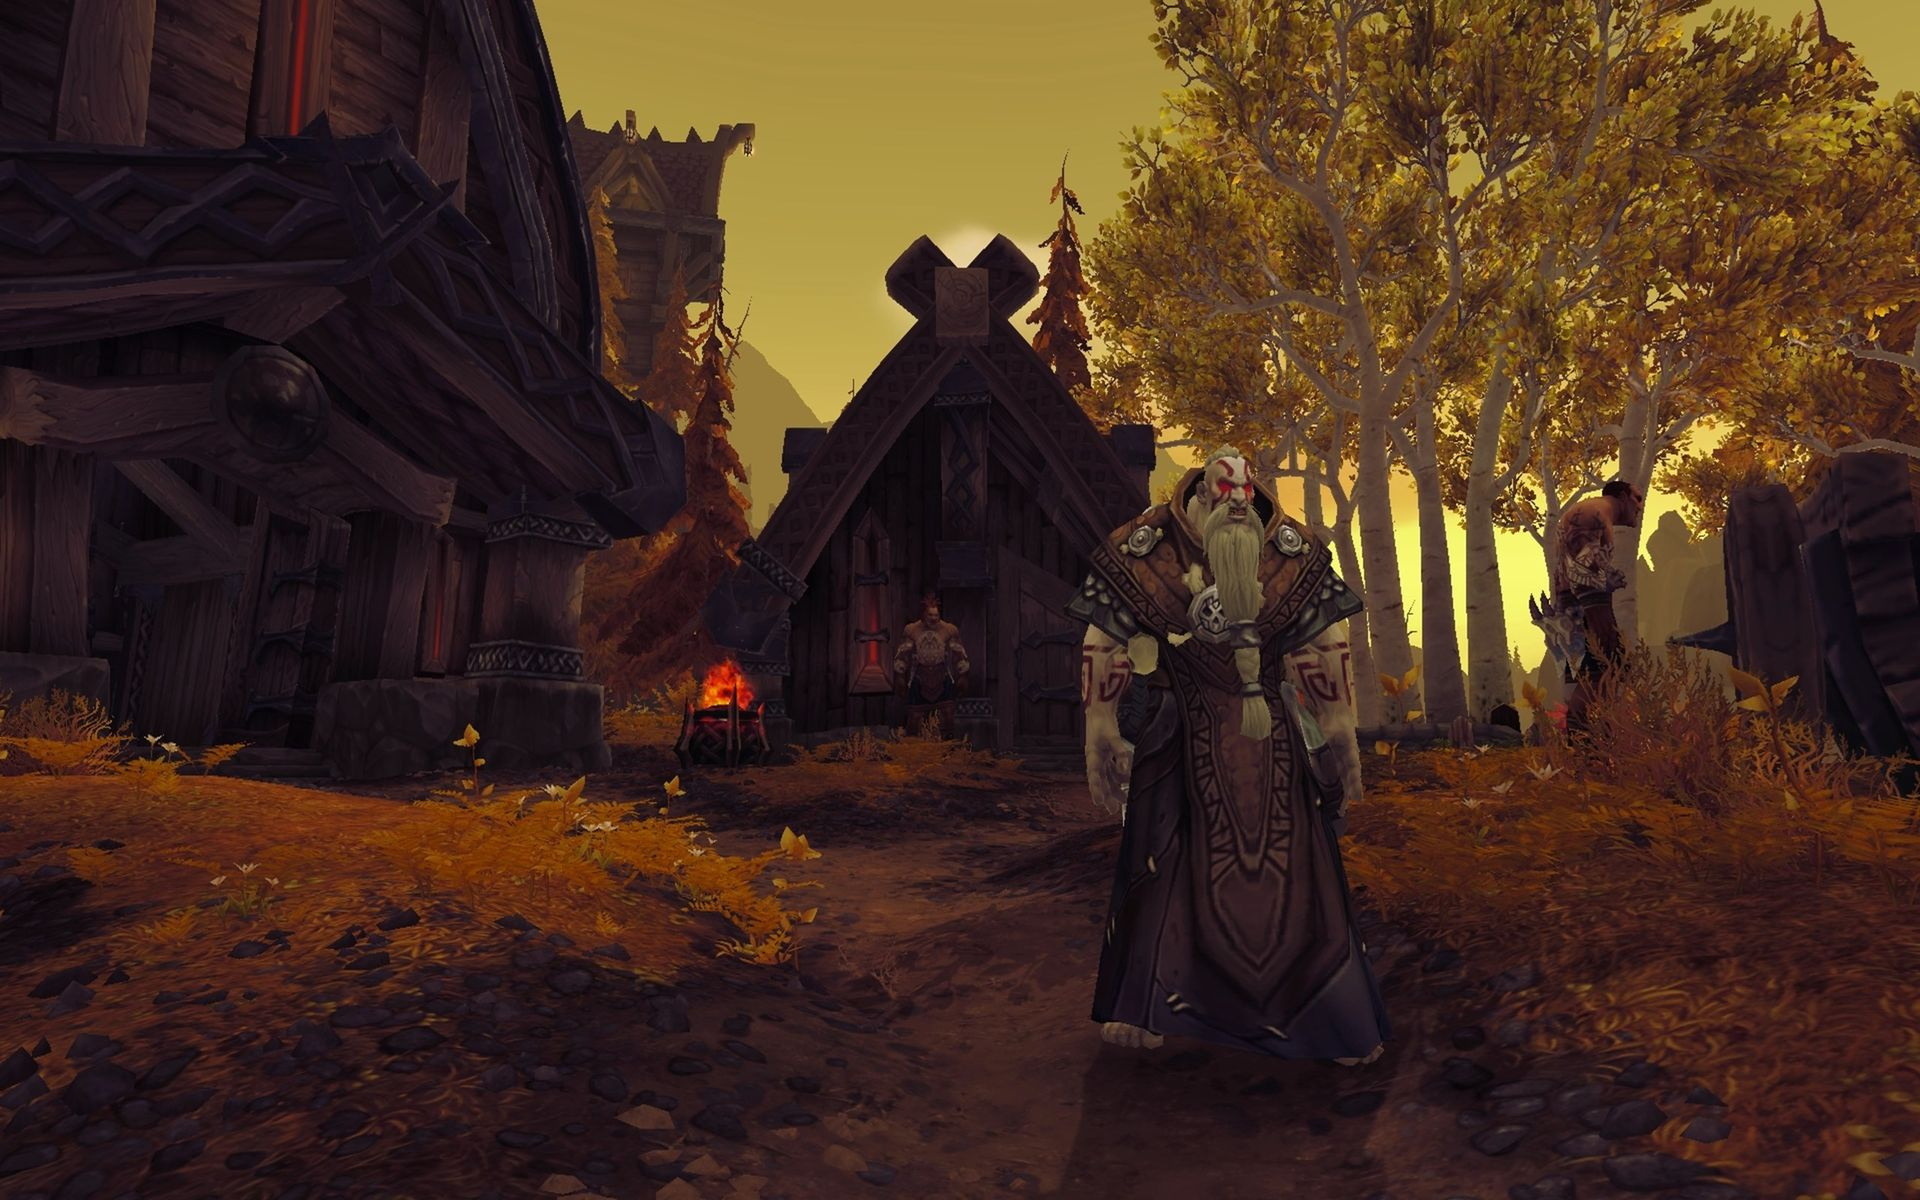 world-of-warcraft-screenshot-23